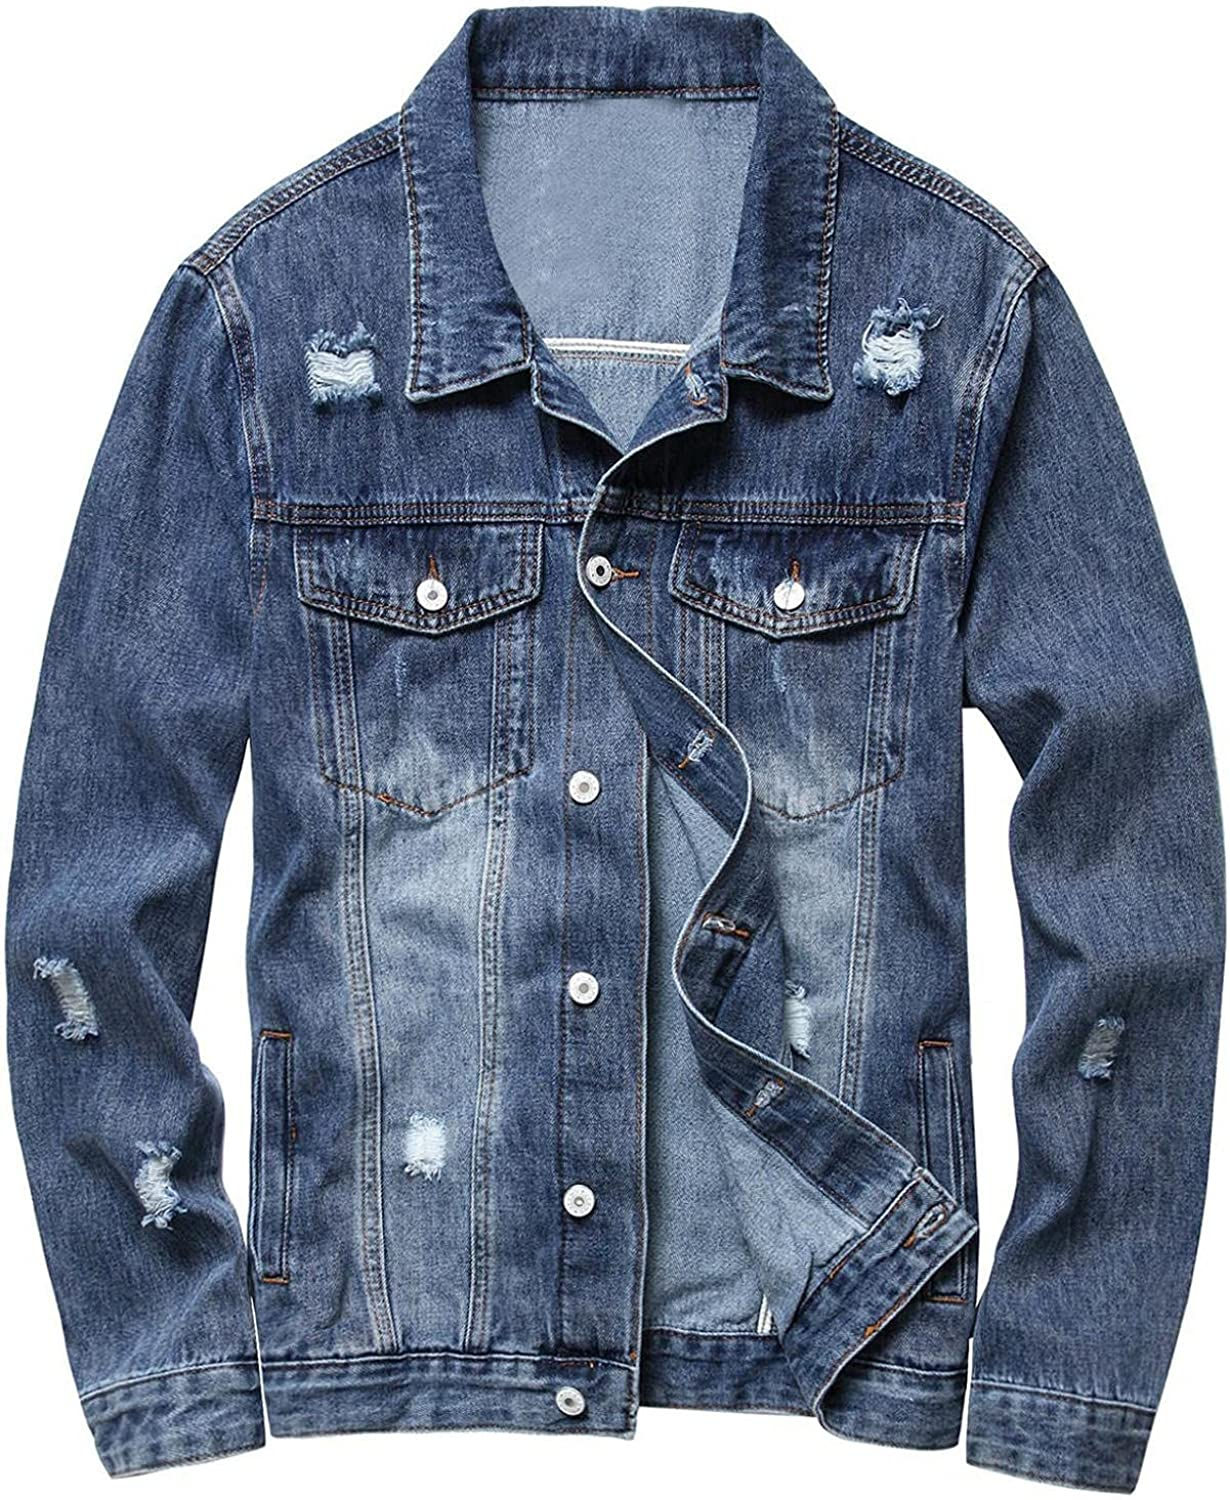 XUNFUN Men's Denim Jacket Retro Unlined Button Down Slim Fit Sherpa Trucker Coat Ripped Distressed Jean Jackets with Holes